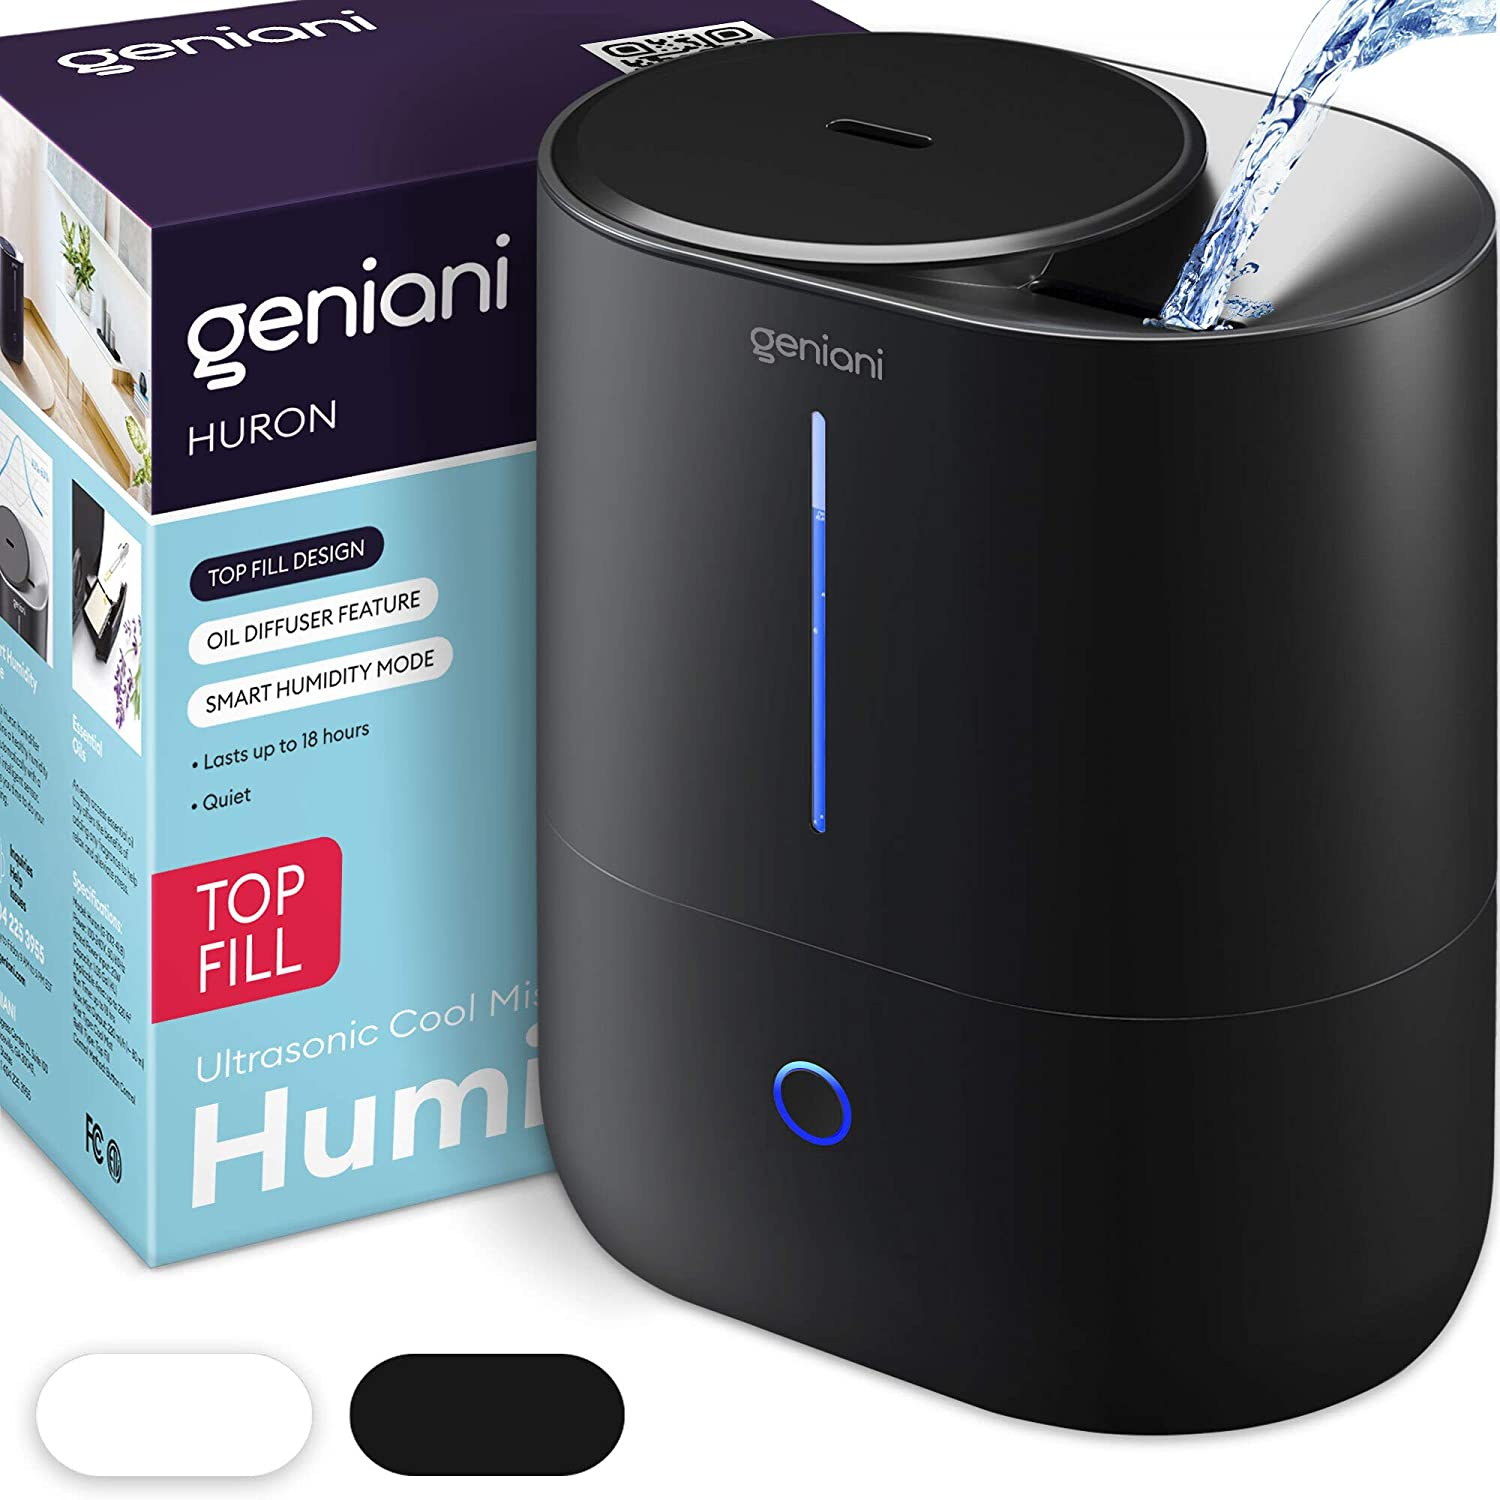 GENIANI Top Fill Cool Mist Best Baby Humidifier